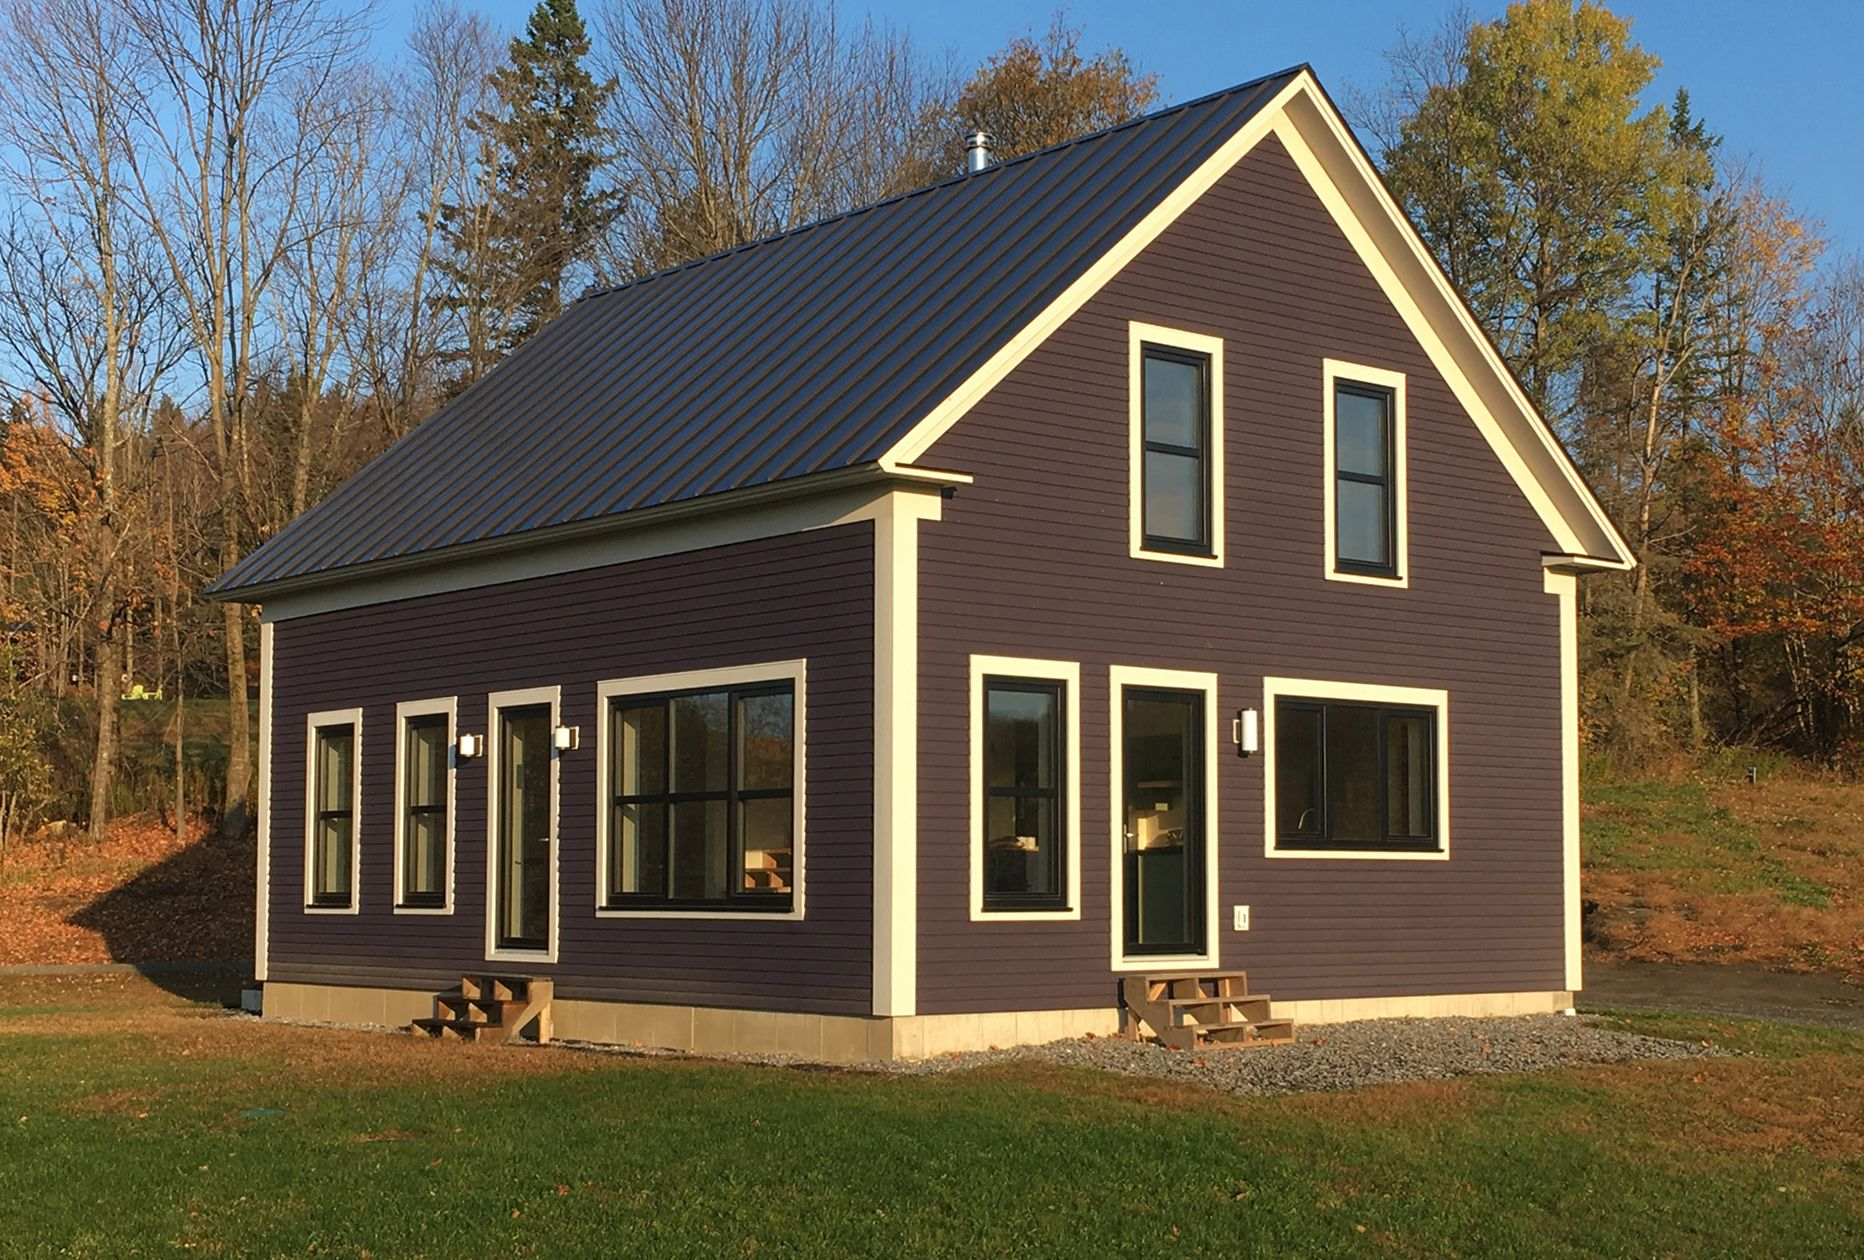 Vermont Simple House Plan Built In Vermont Simple House Simple House Plans House Plans Farmhouse